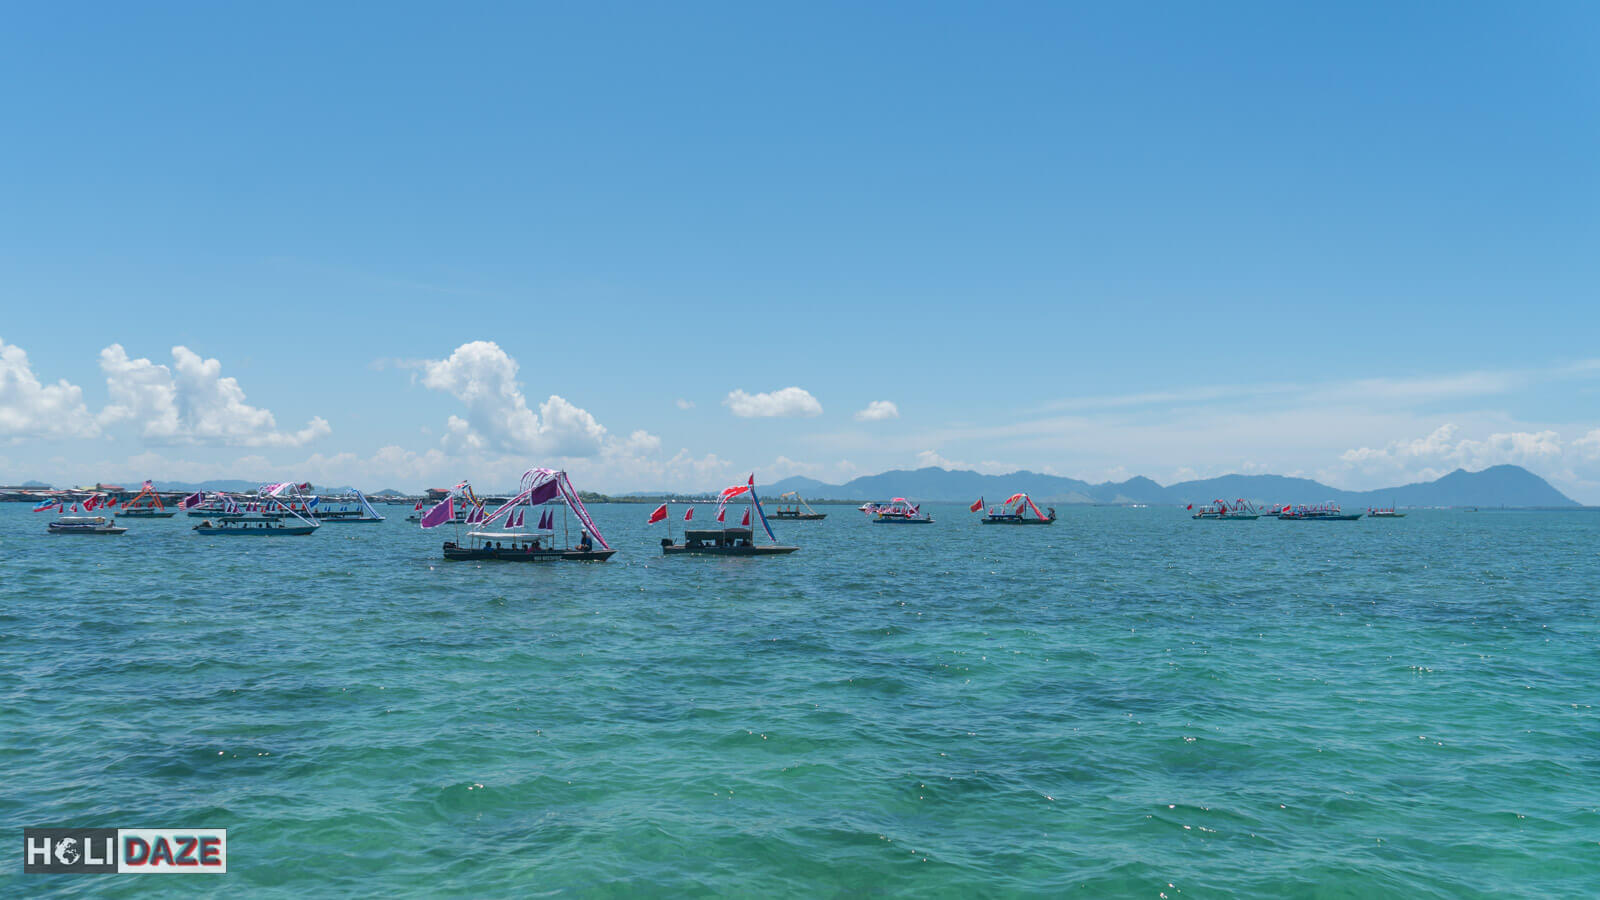 Boats arriving for the Regatta Lepa festival in Semporna, Sabah